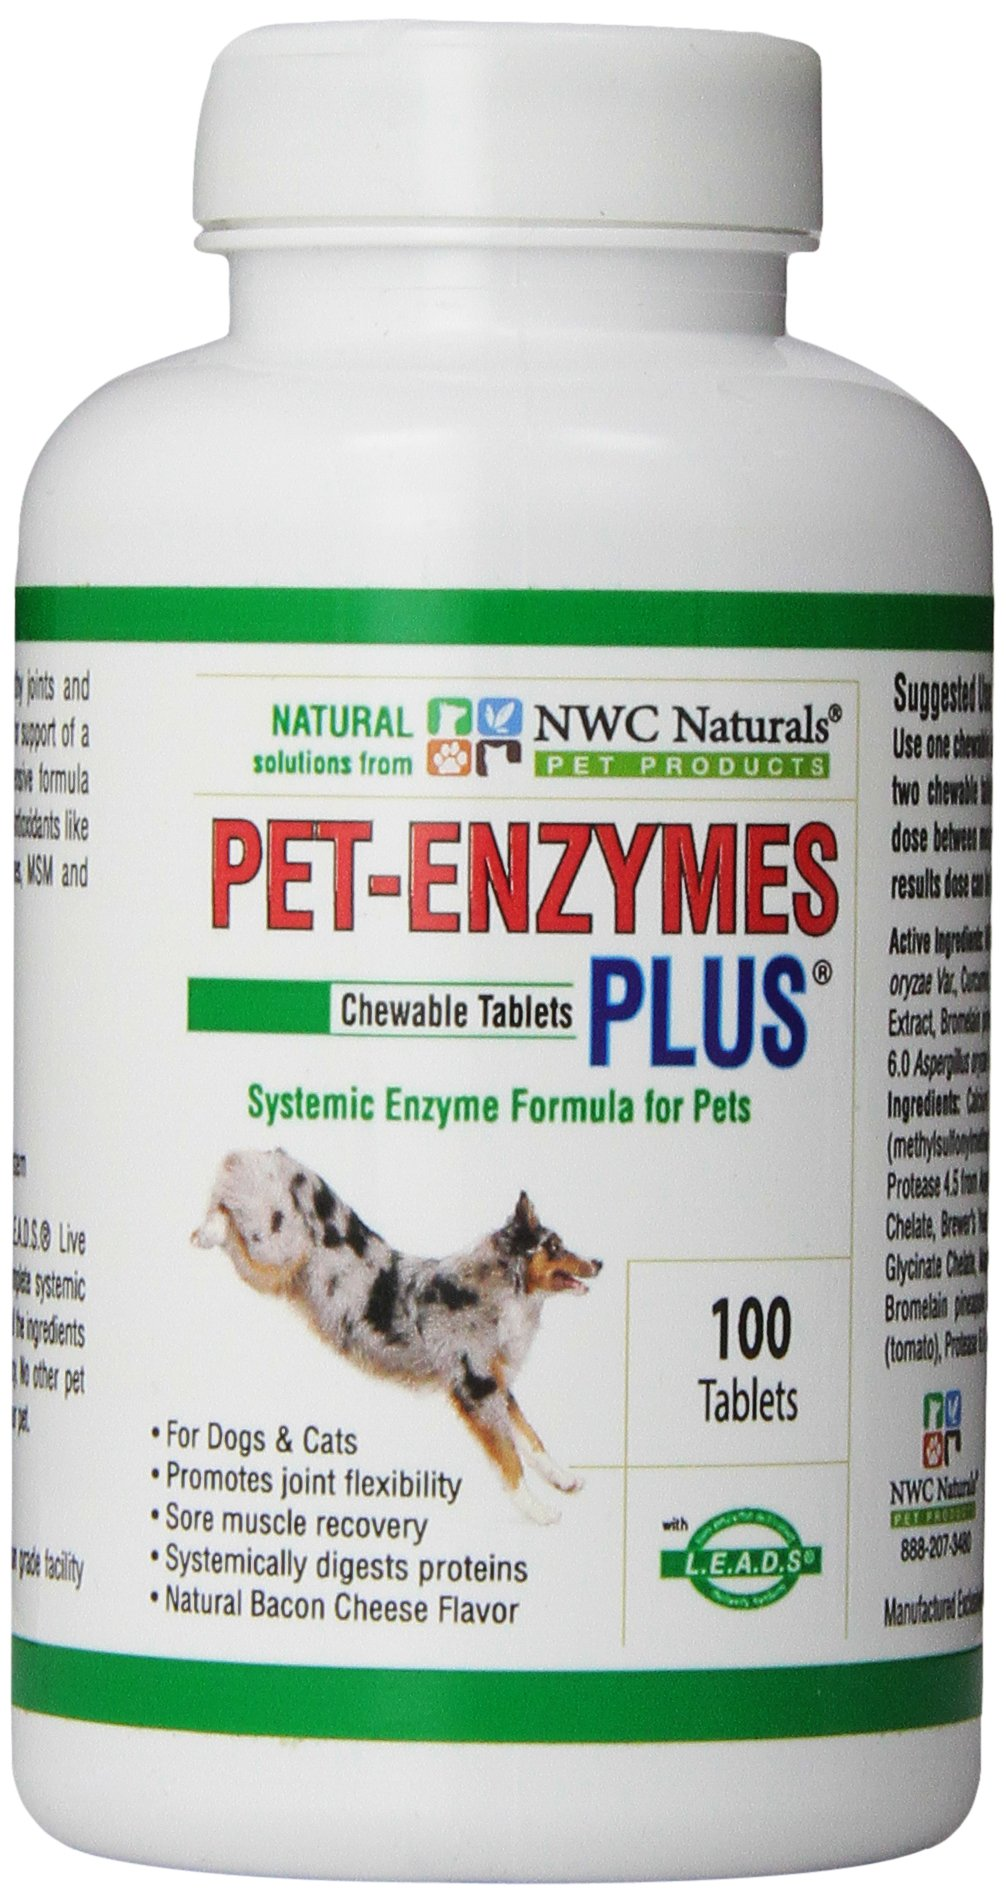 NWC Naturals Pet-Enzymes Plus Joint and Allergy Formula for Dogs and Cats